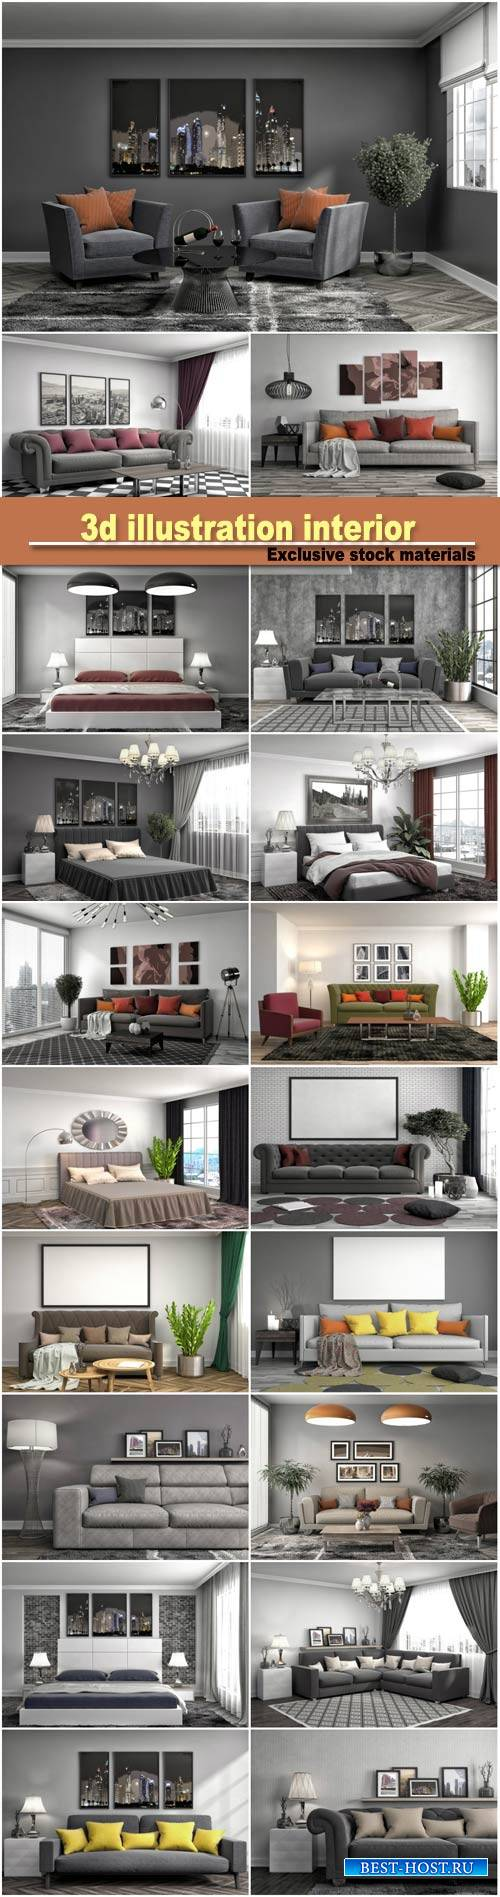 3d illustration bedroom interior, interior with sofa